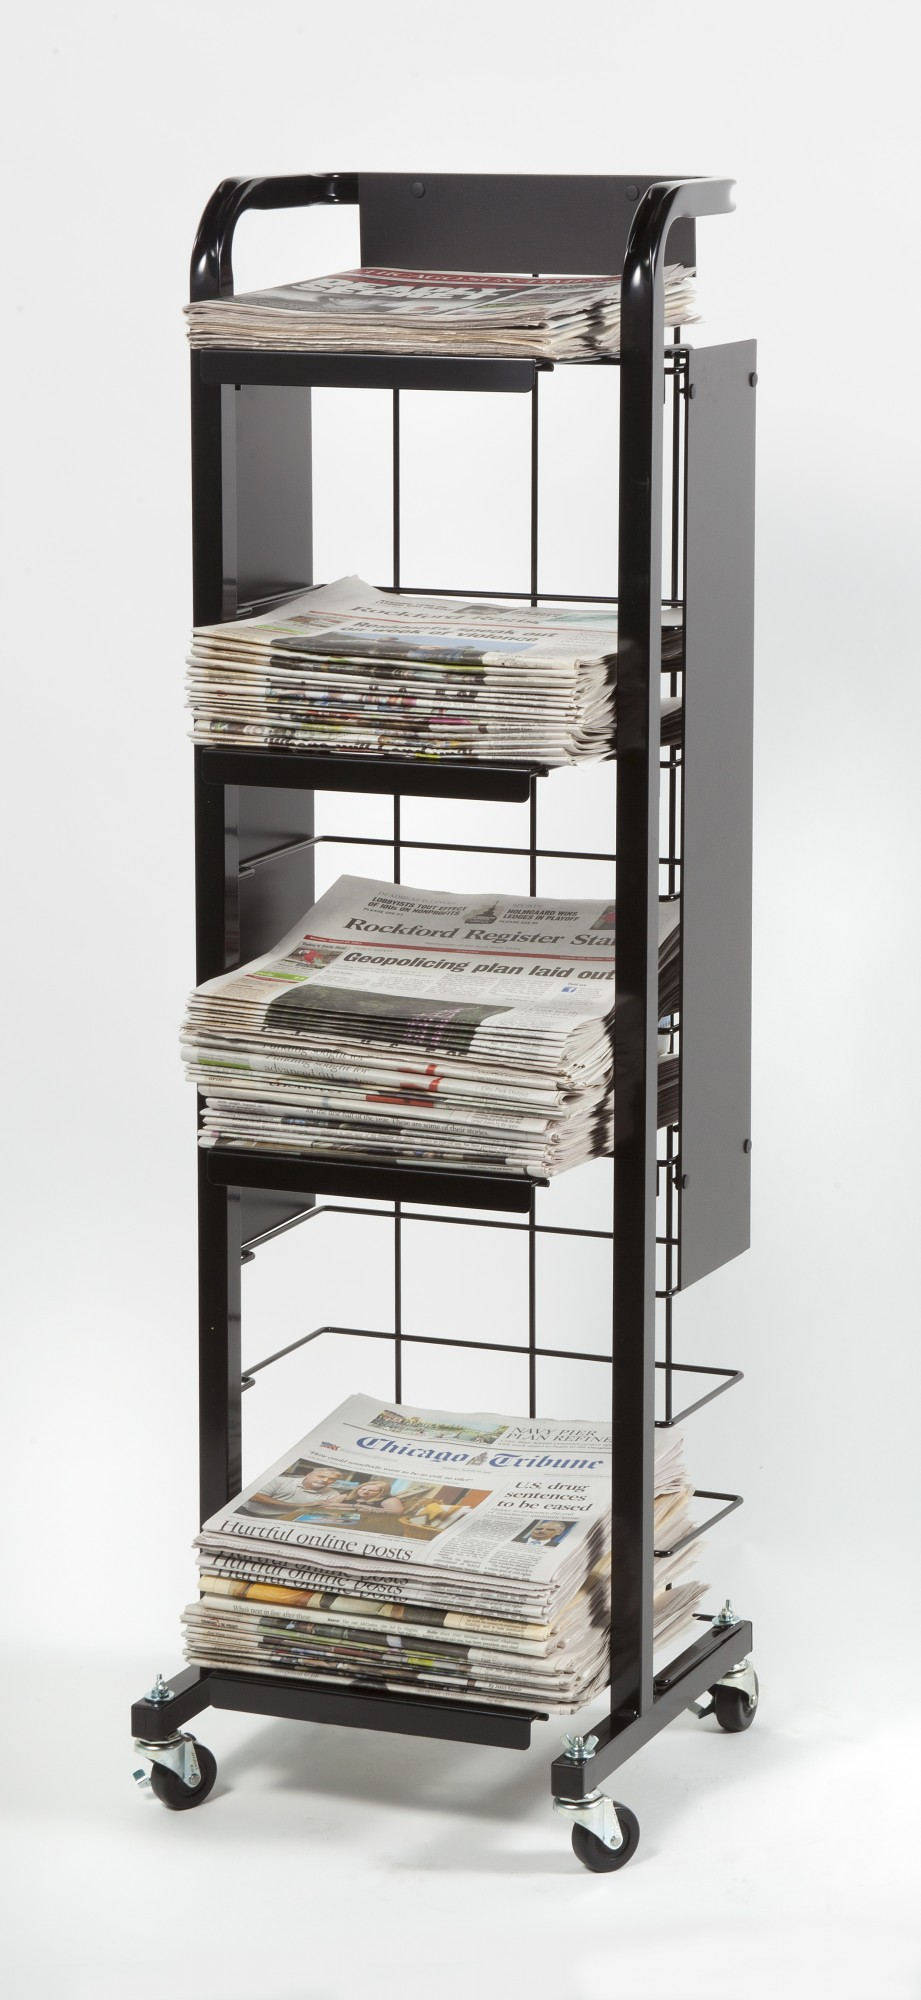 F-110 Tall Broadsheet Display Cart